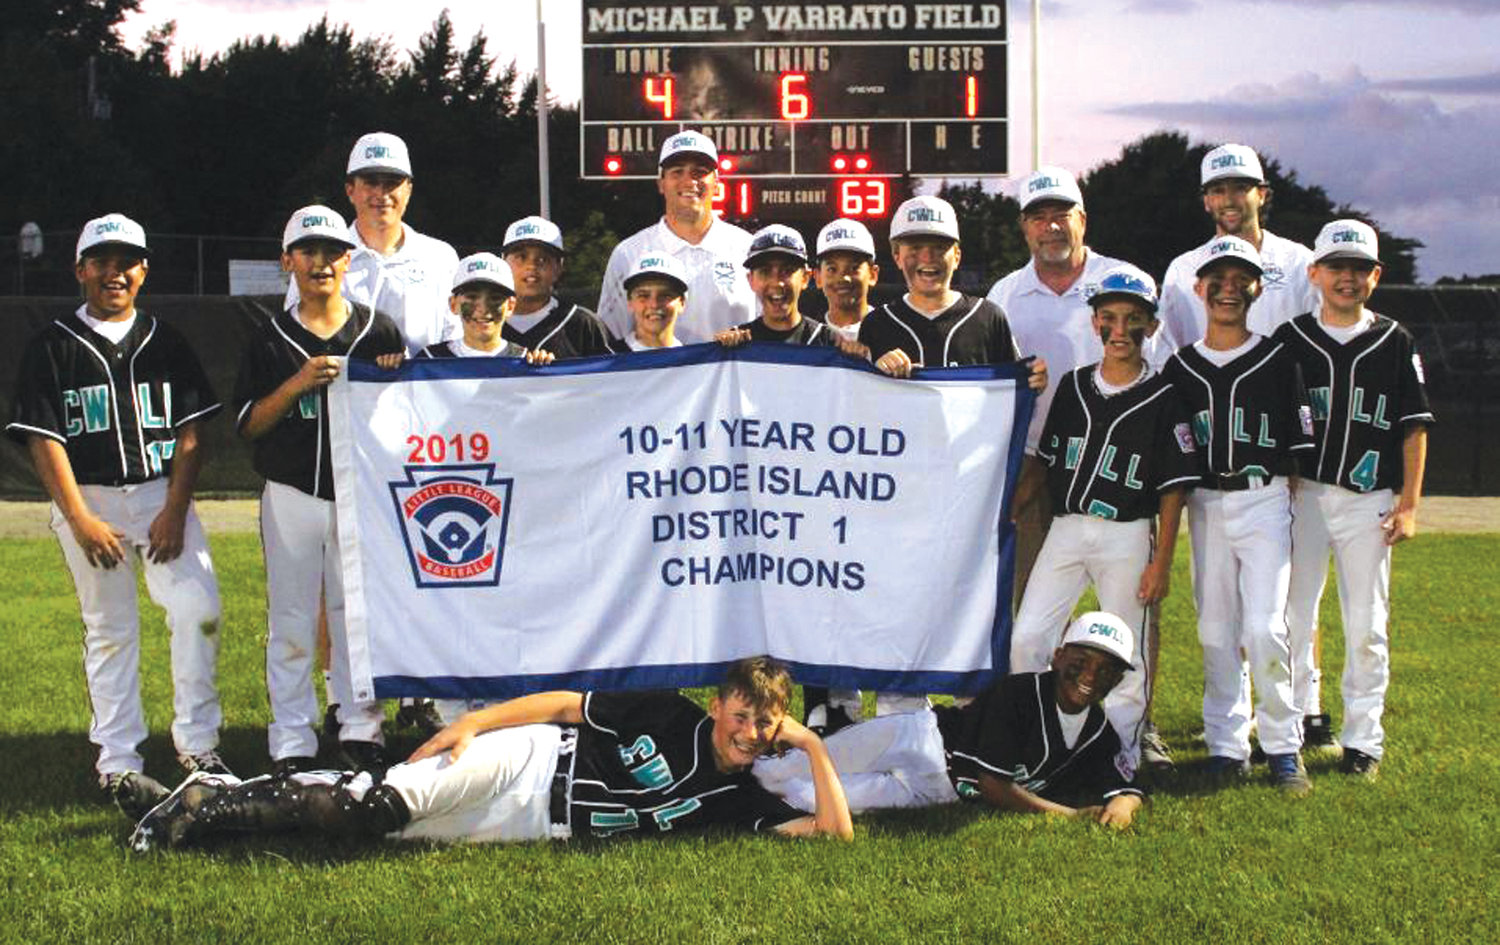 WE ARE THE CHAMPIONS: The Cranston Western 11's after winning the District I title.